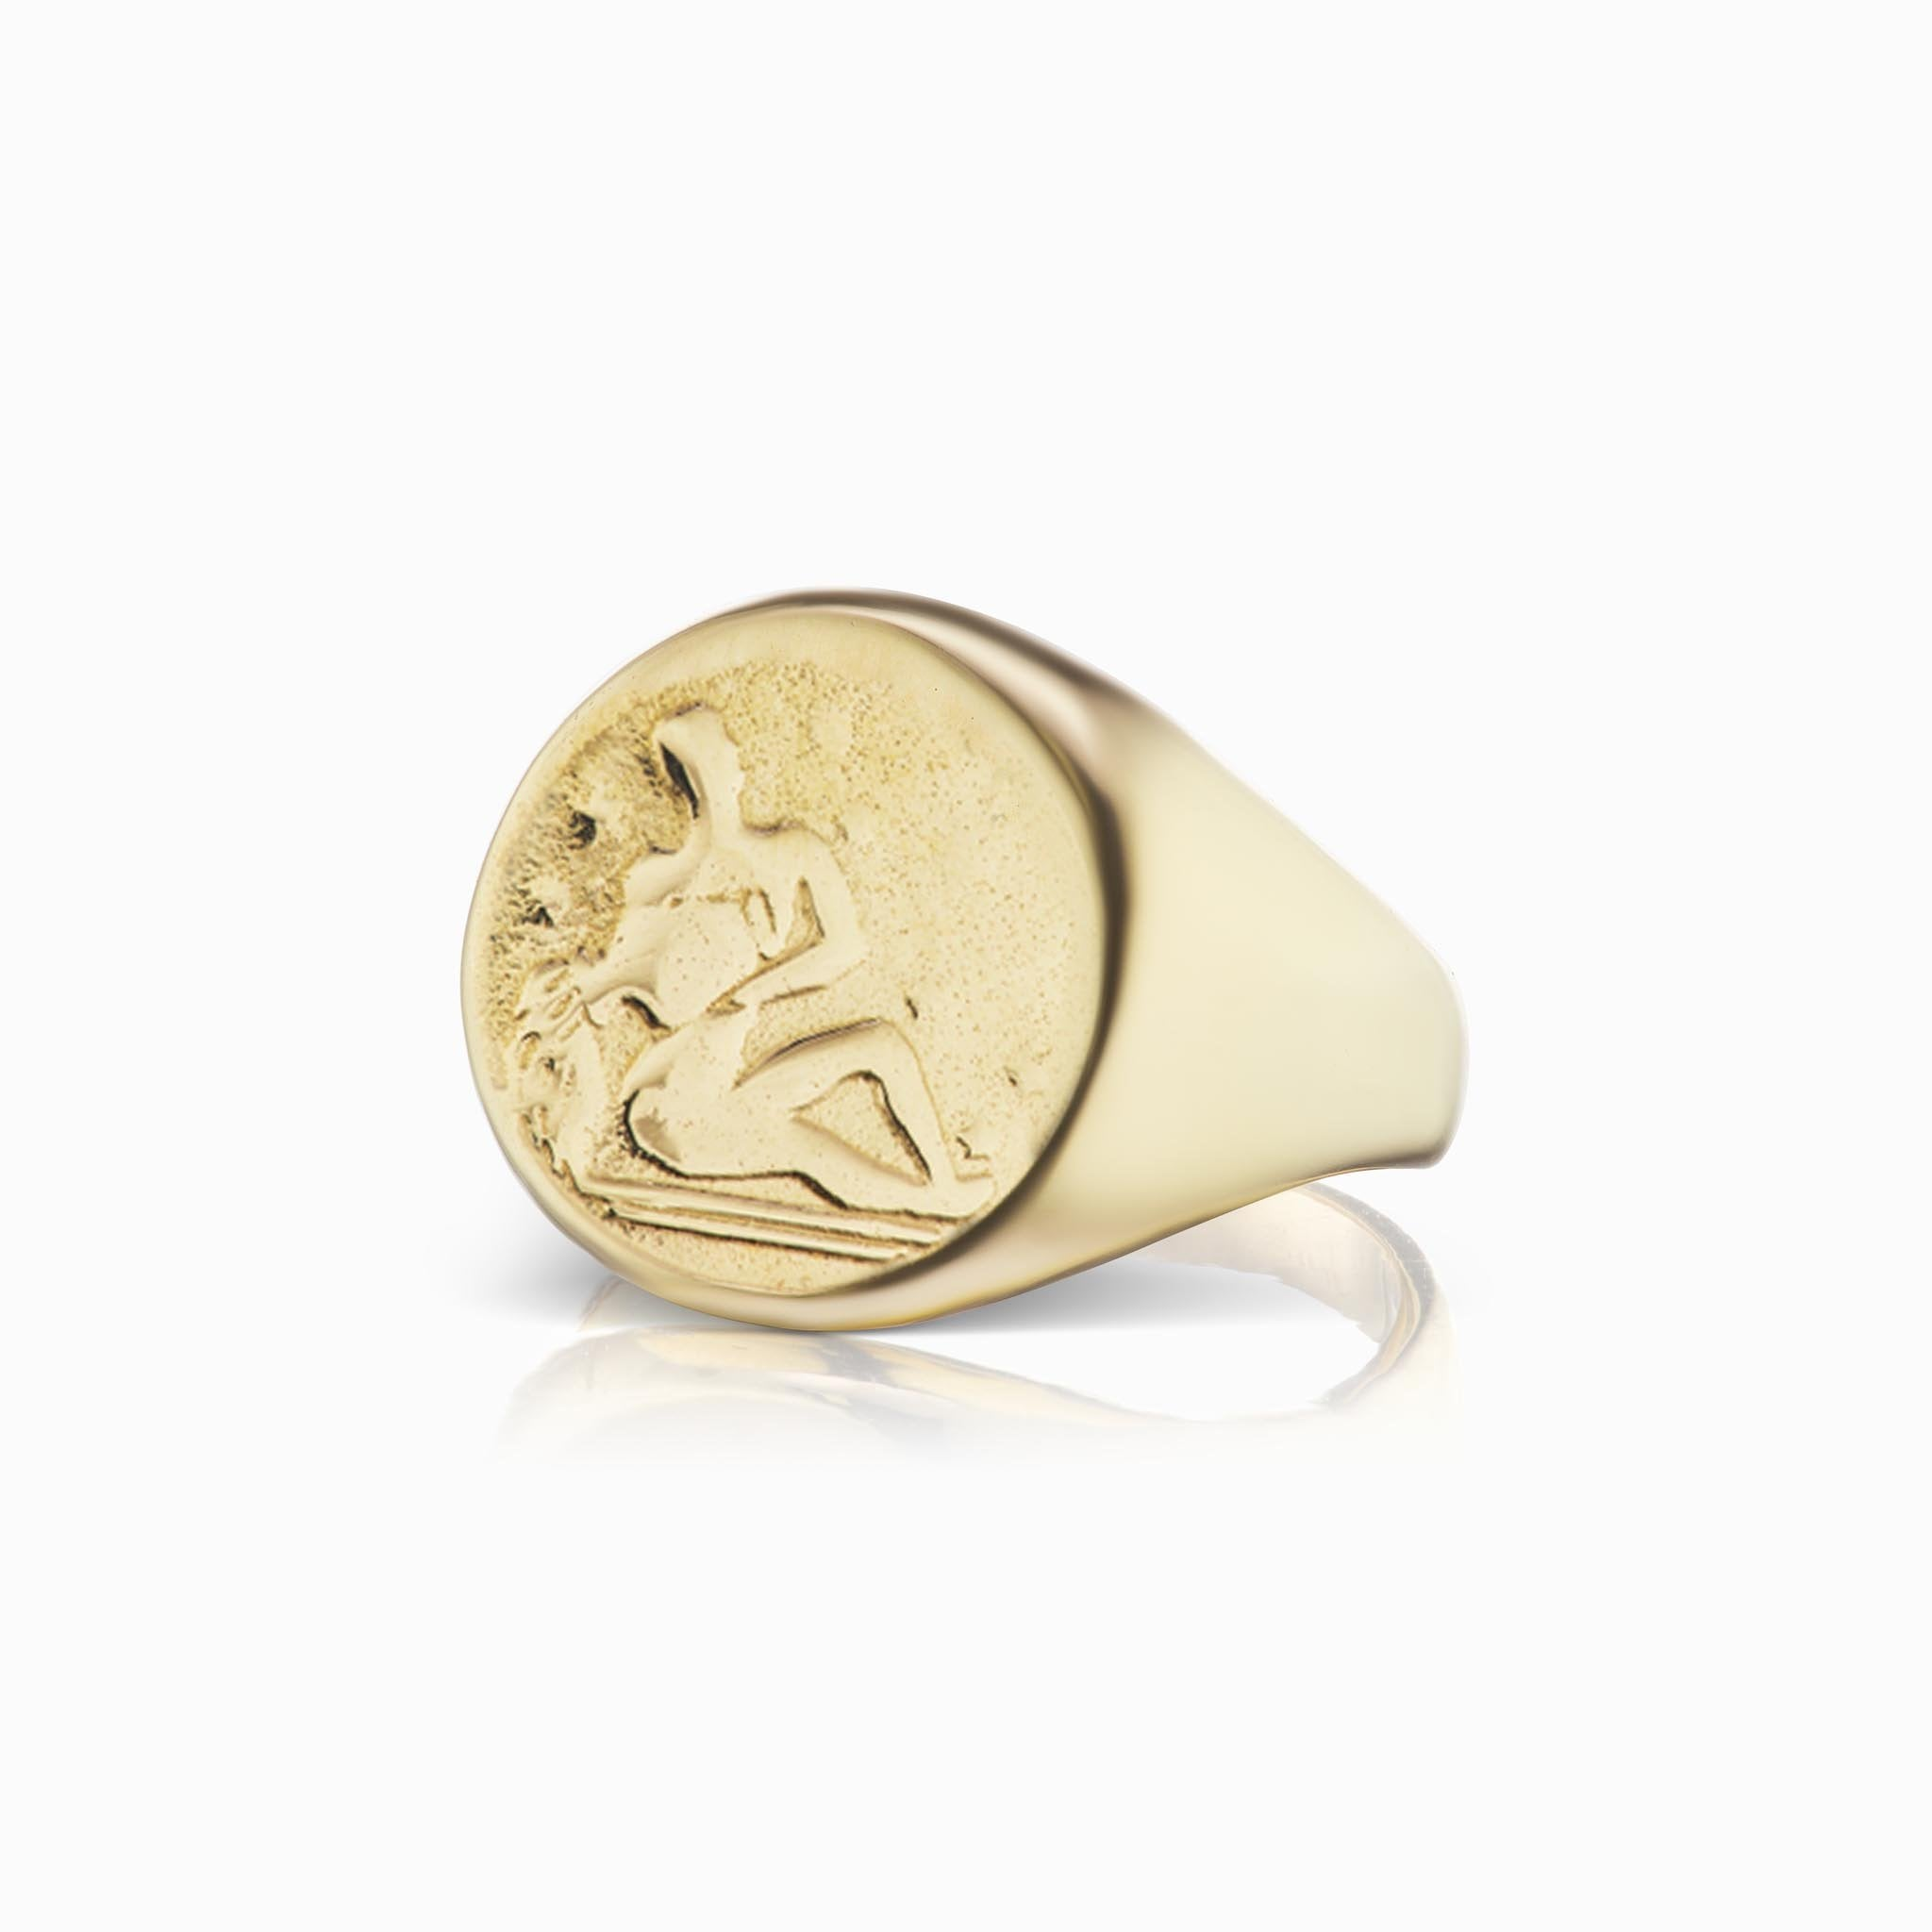 Zodiac Signet Ring - Aquarius